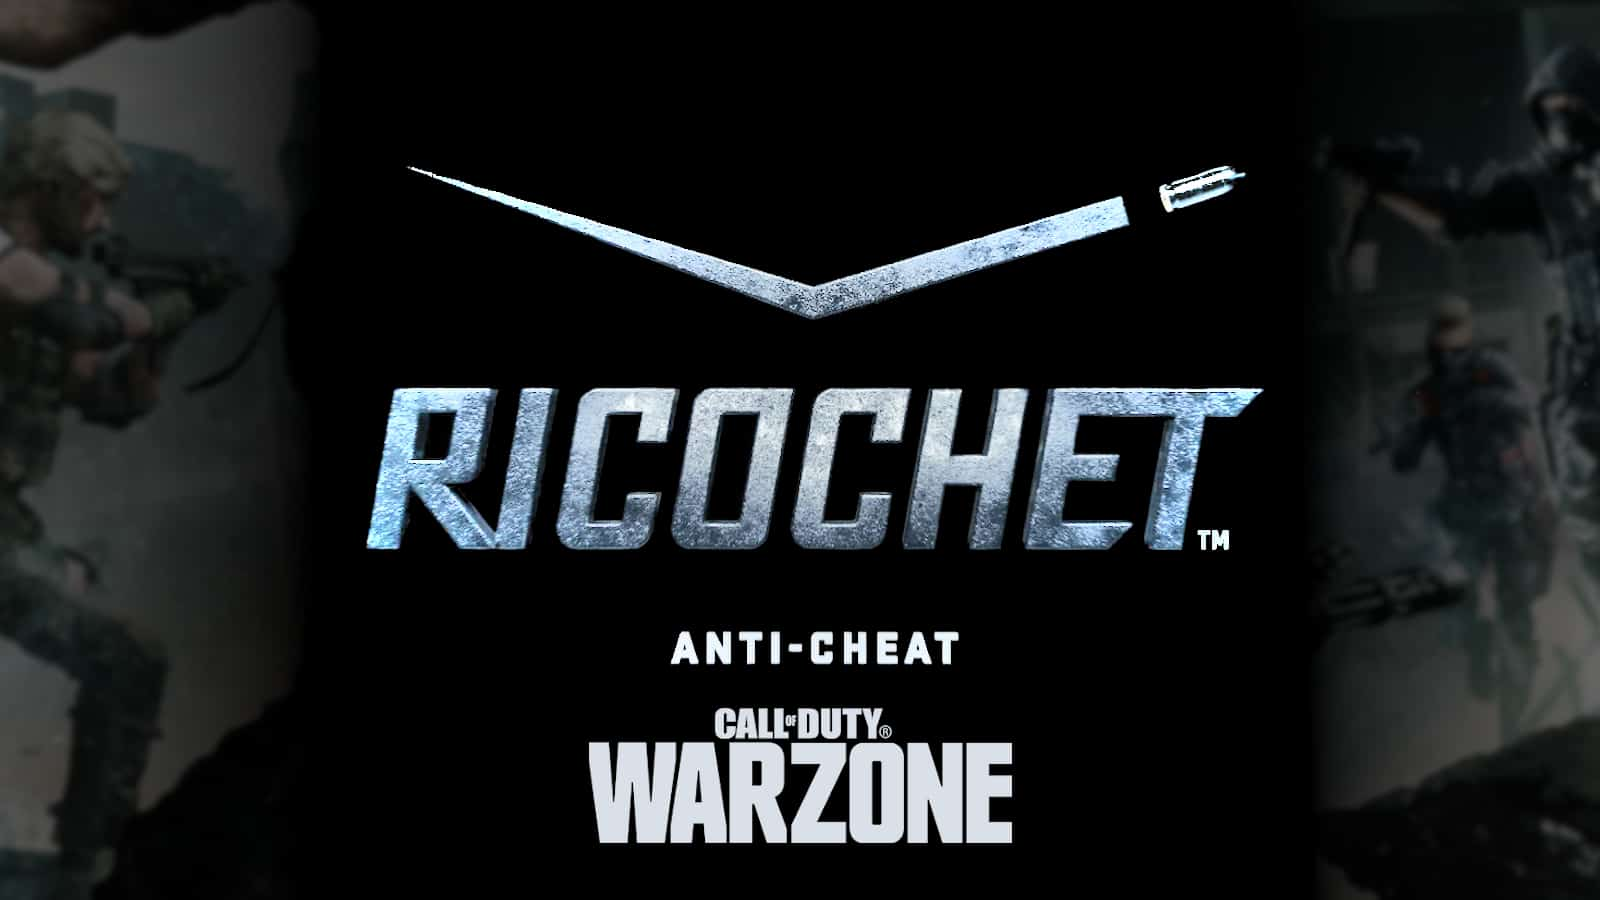 Kernel-level anticheat is official for Call of Duty